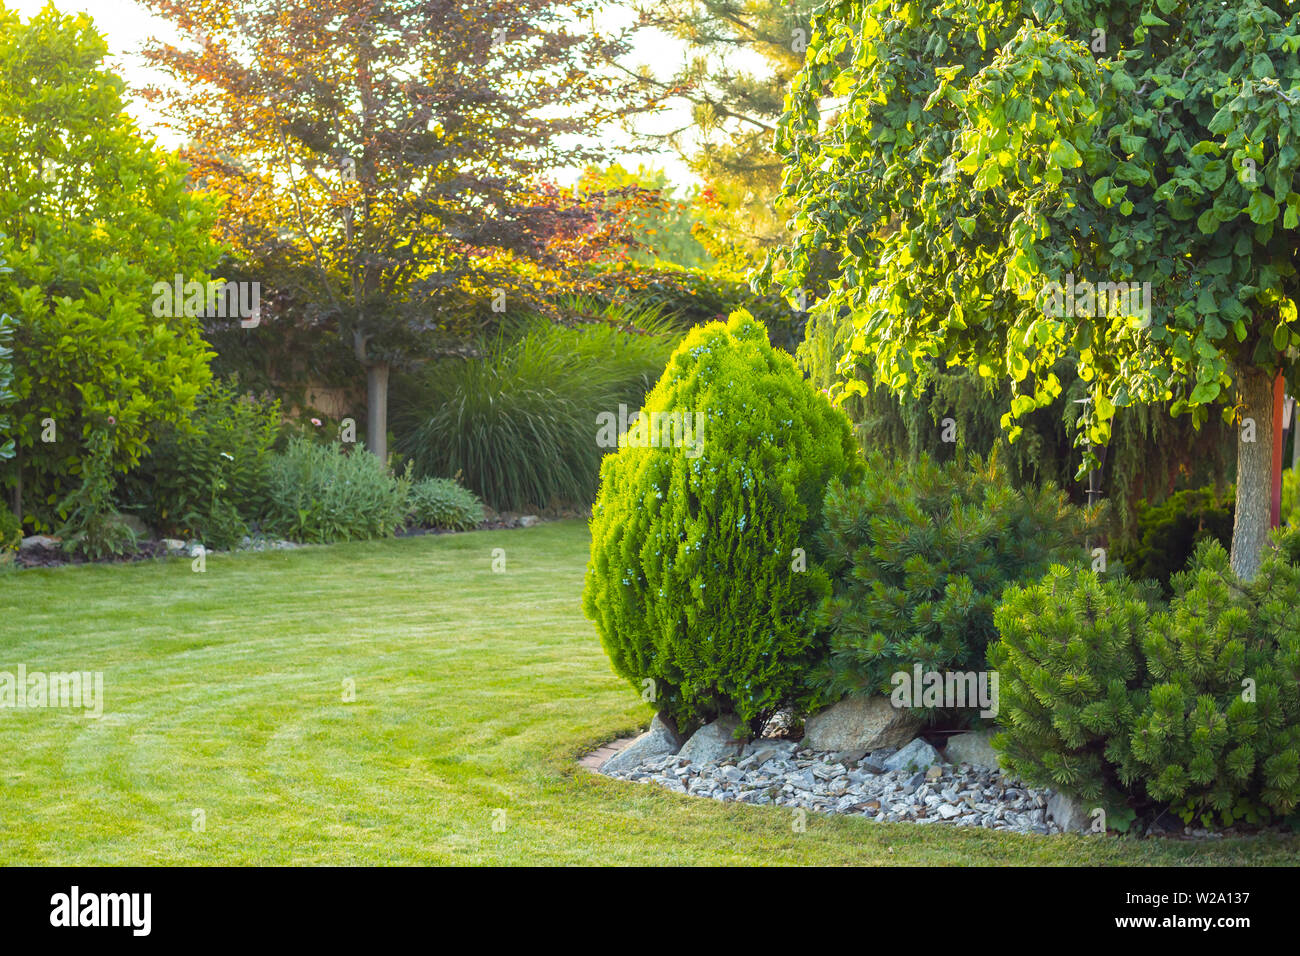 Home Garden With Decorative Trees And Plants Stock Photo